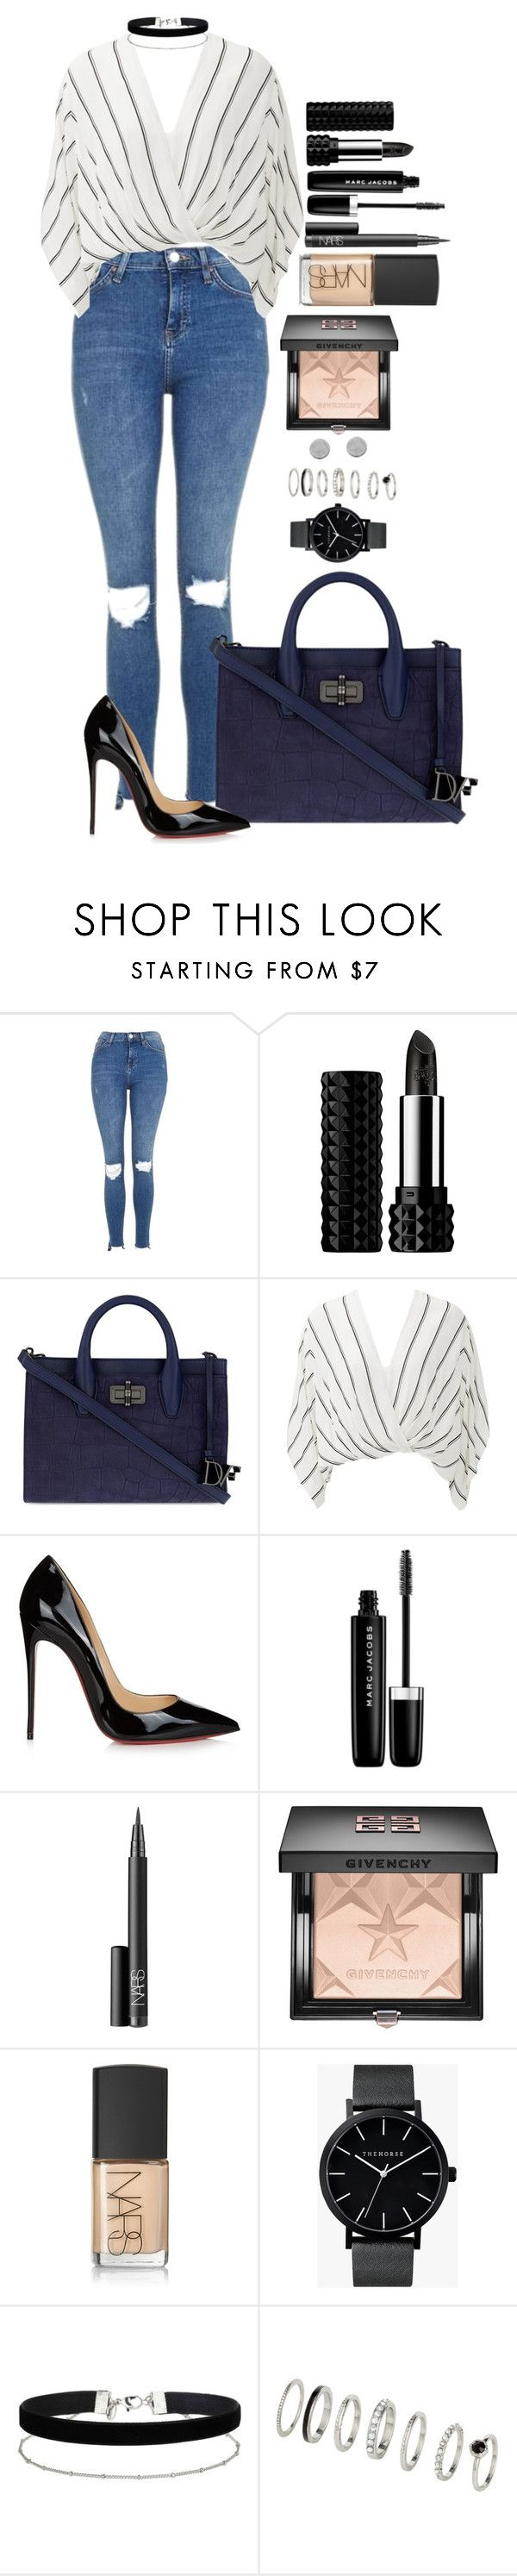 """Untitled #1542"" by fabianarveloc on Polyvore featuring Topshop, Kat Von D, Diane Von Furstenberg, Free People, Christian Louboutin, Marc Jacobs, NARS Cosmetics, Givenchy, The Horse and Miss Selfridge"